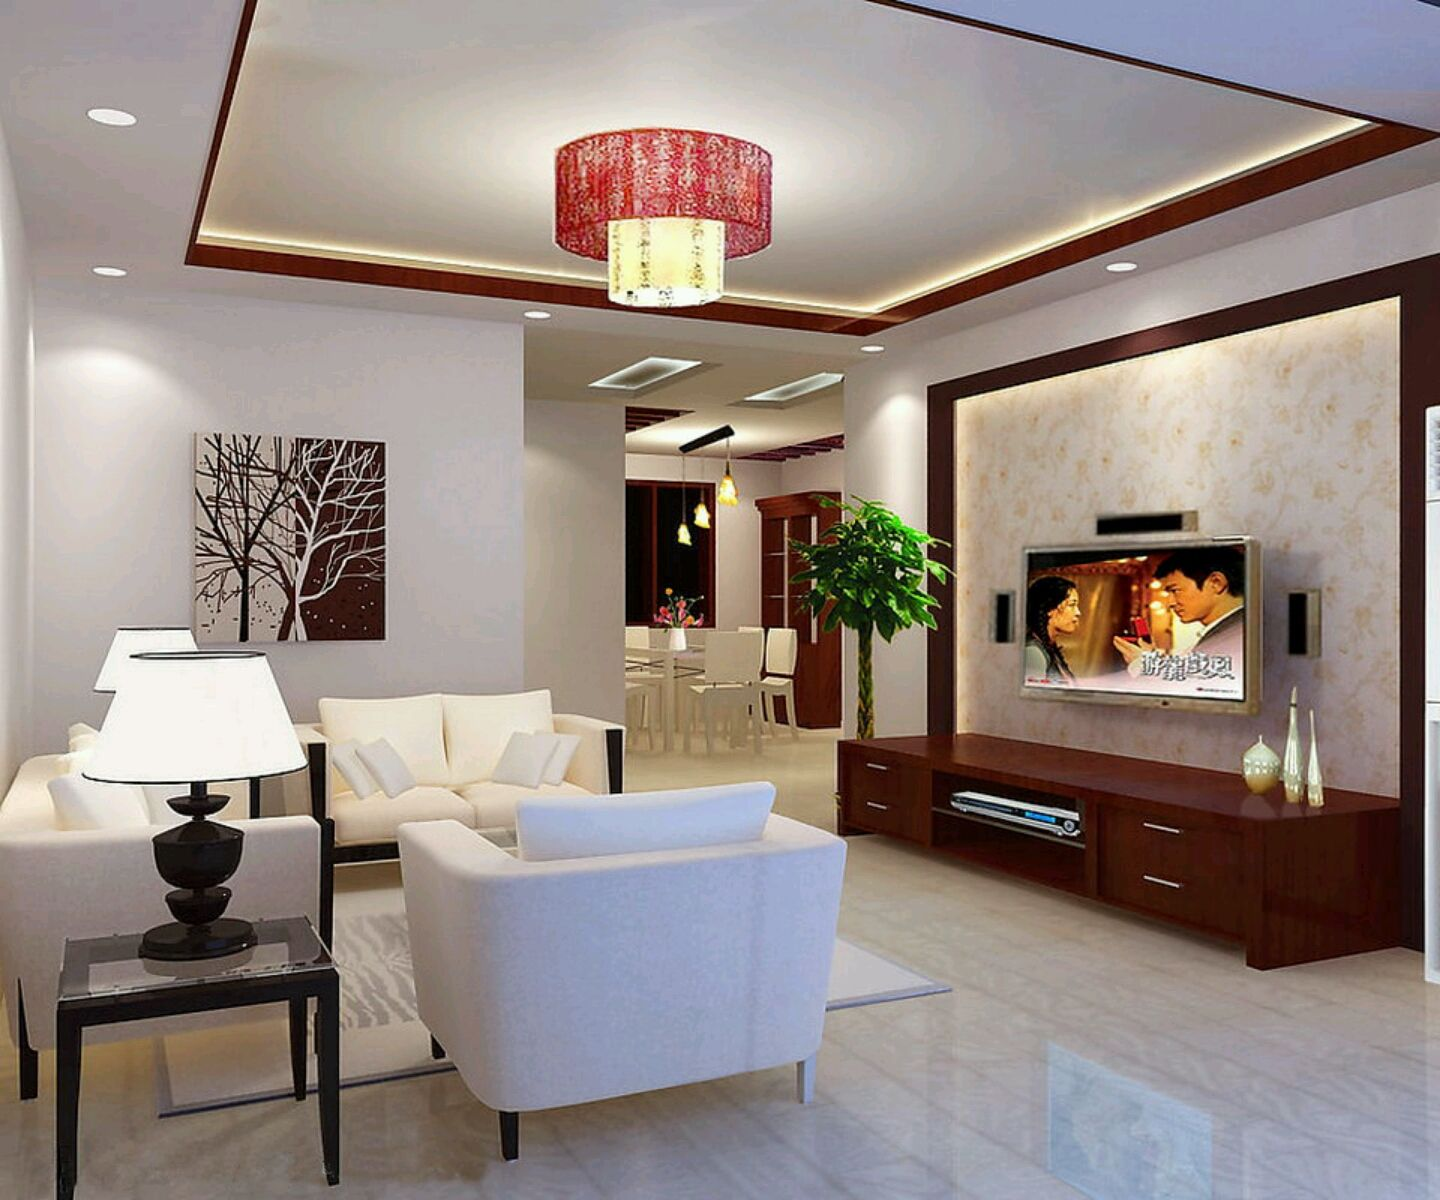 Living Room Ceiling Design Ideas Simple Ceiling Design Ceiling